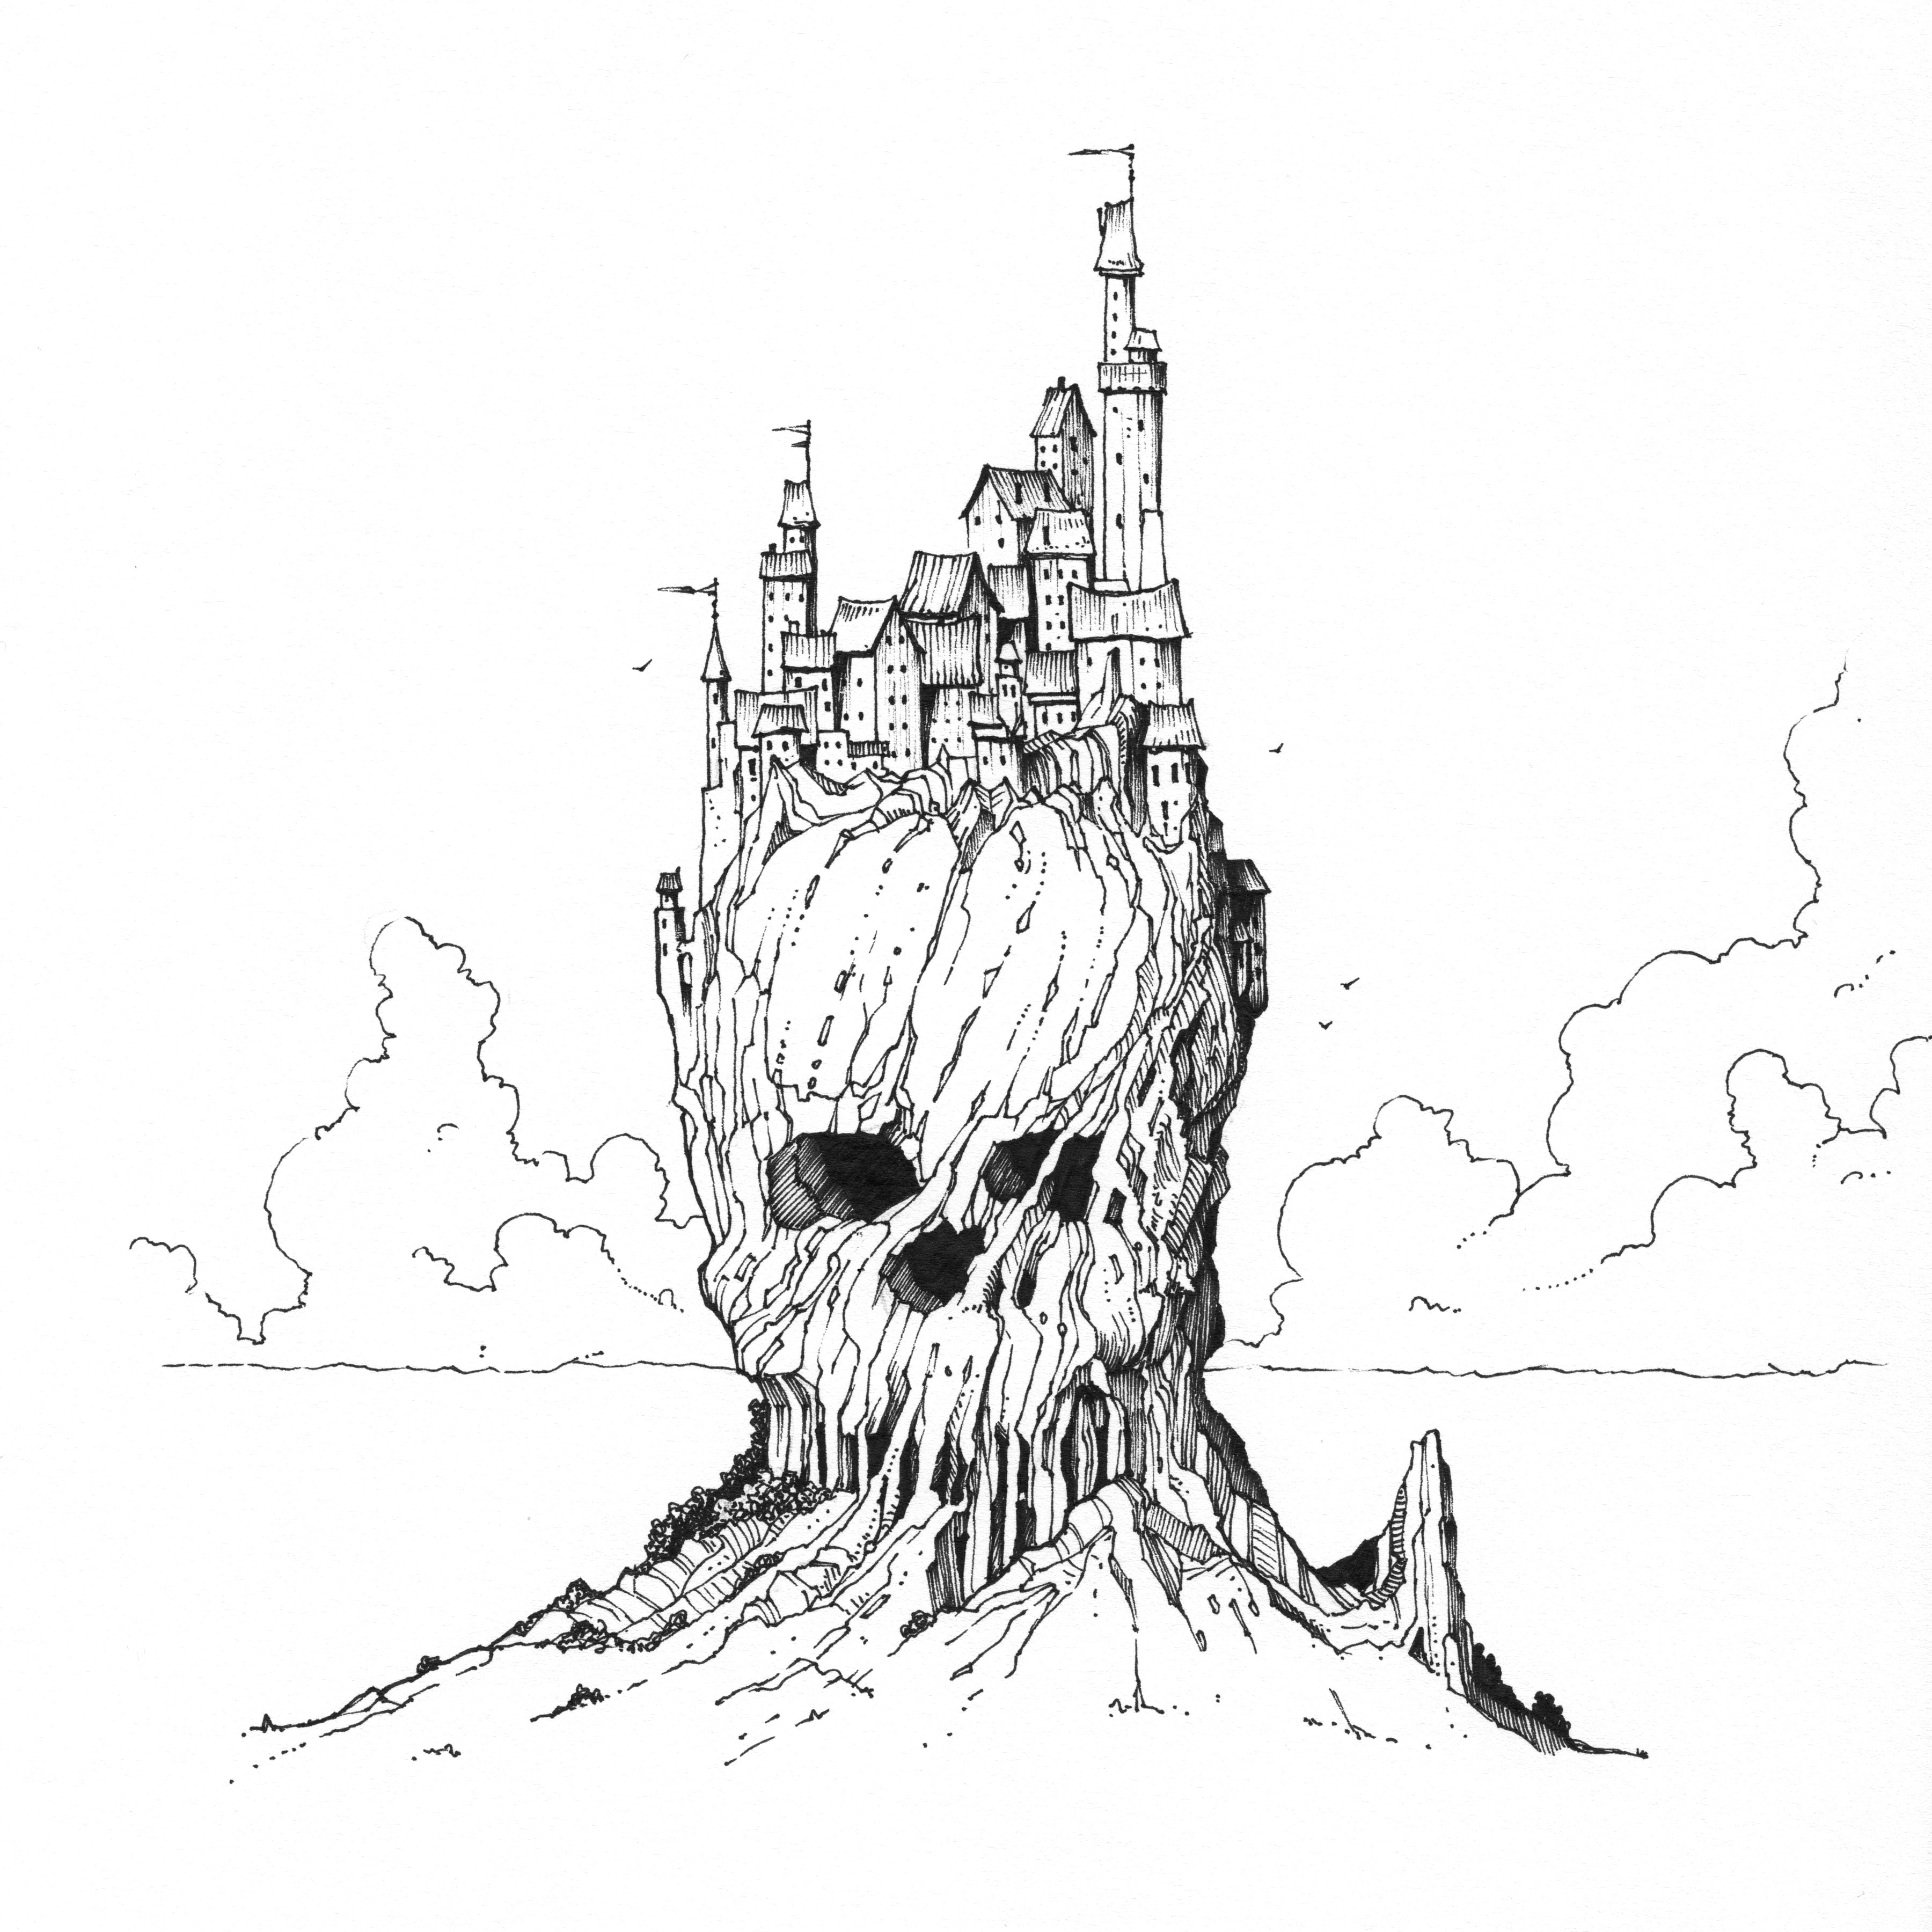 Skull City. Latest illustration isn't a happy place to